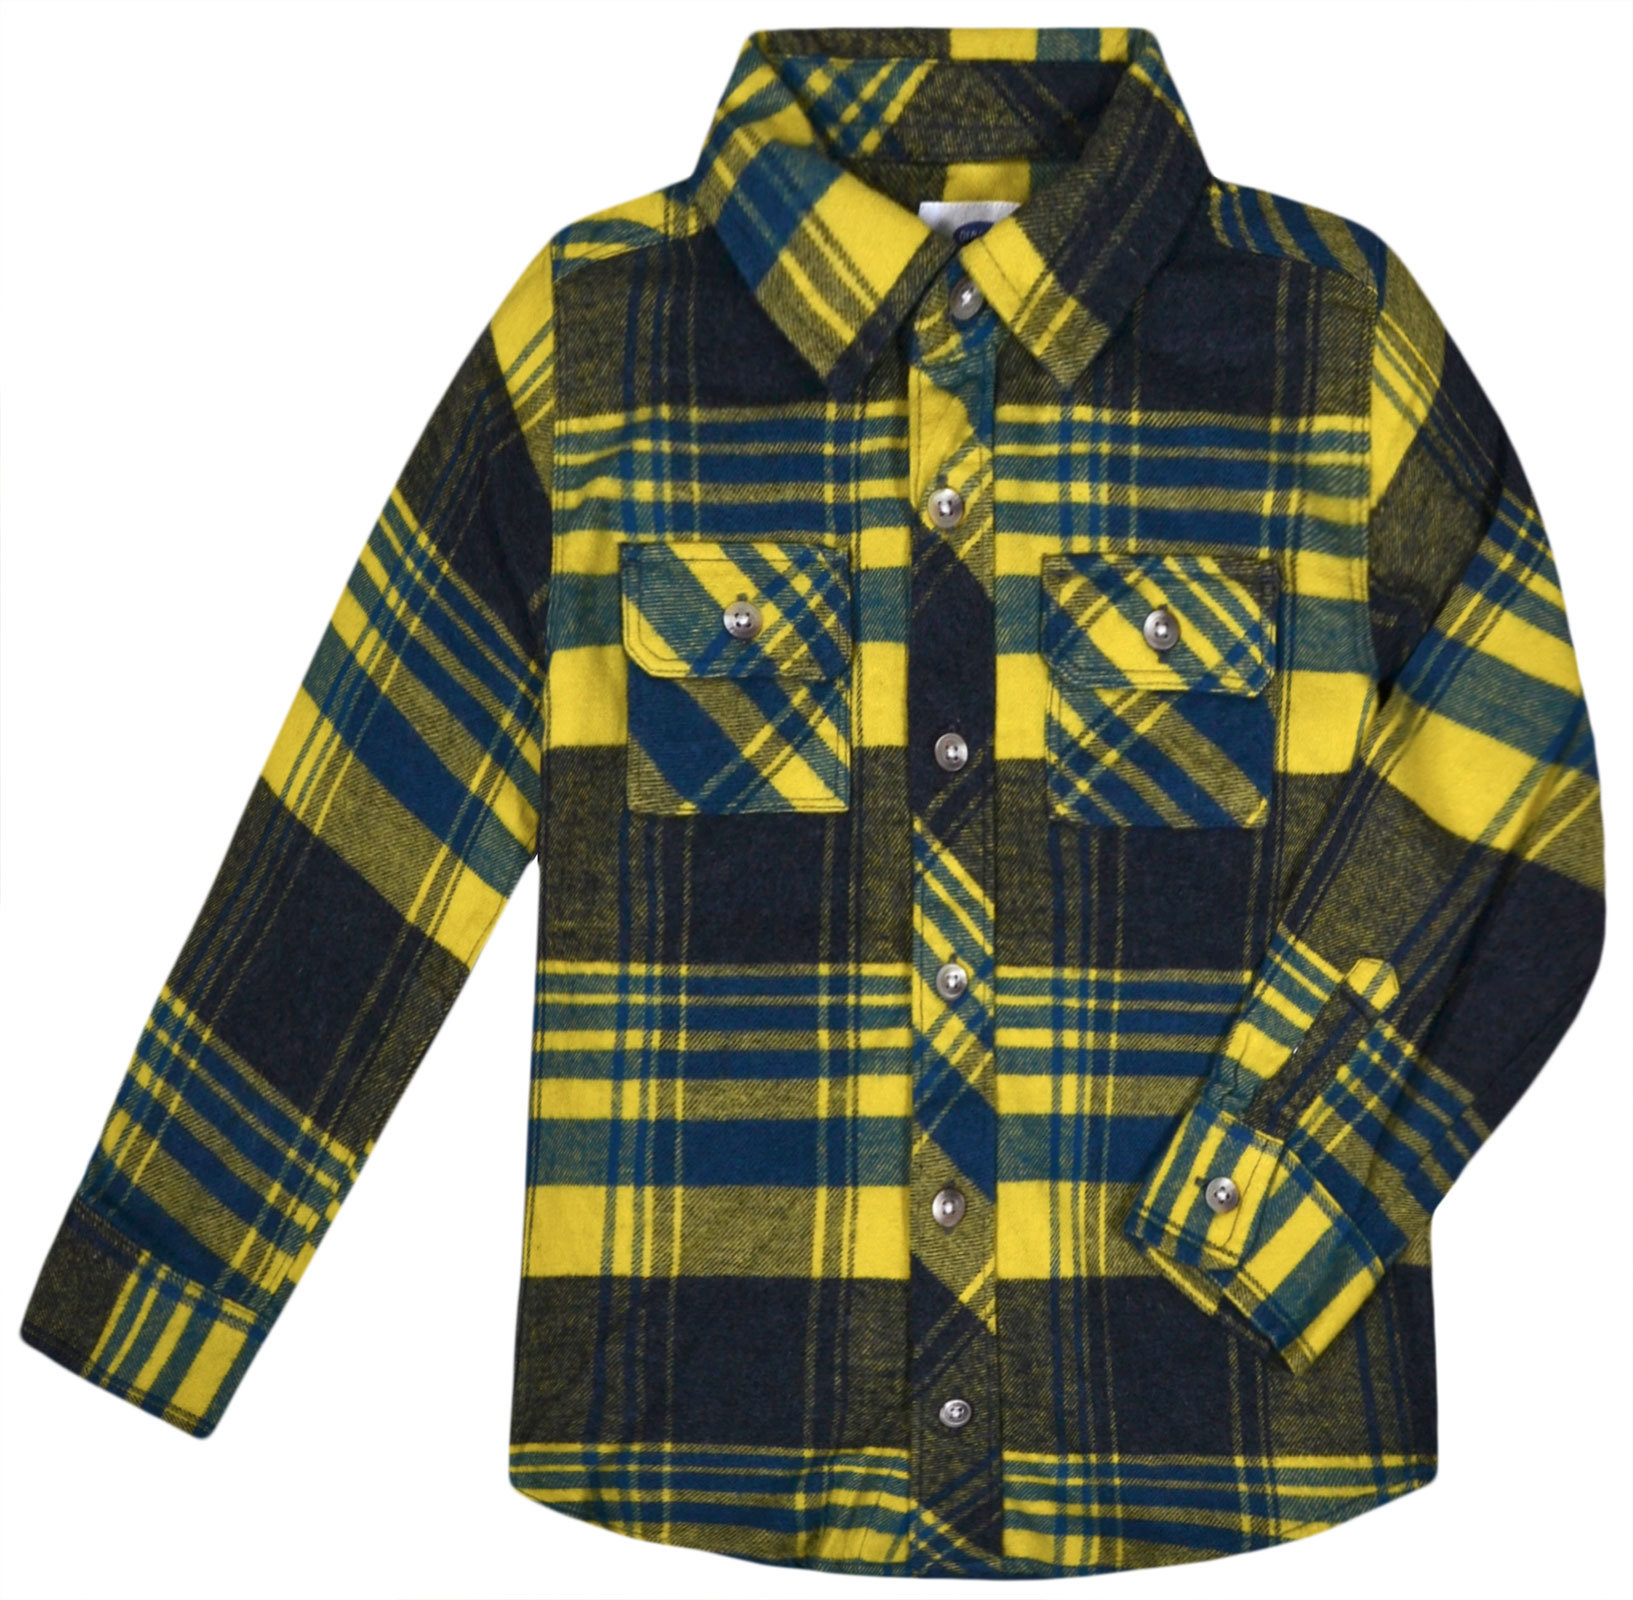 Boys-Ex-GAP-Shirt-Boy-Long-Sleeve-Cotton-Top-Check-Blouse-Ages-2-3-4-5-6-Years thumbnail 3